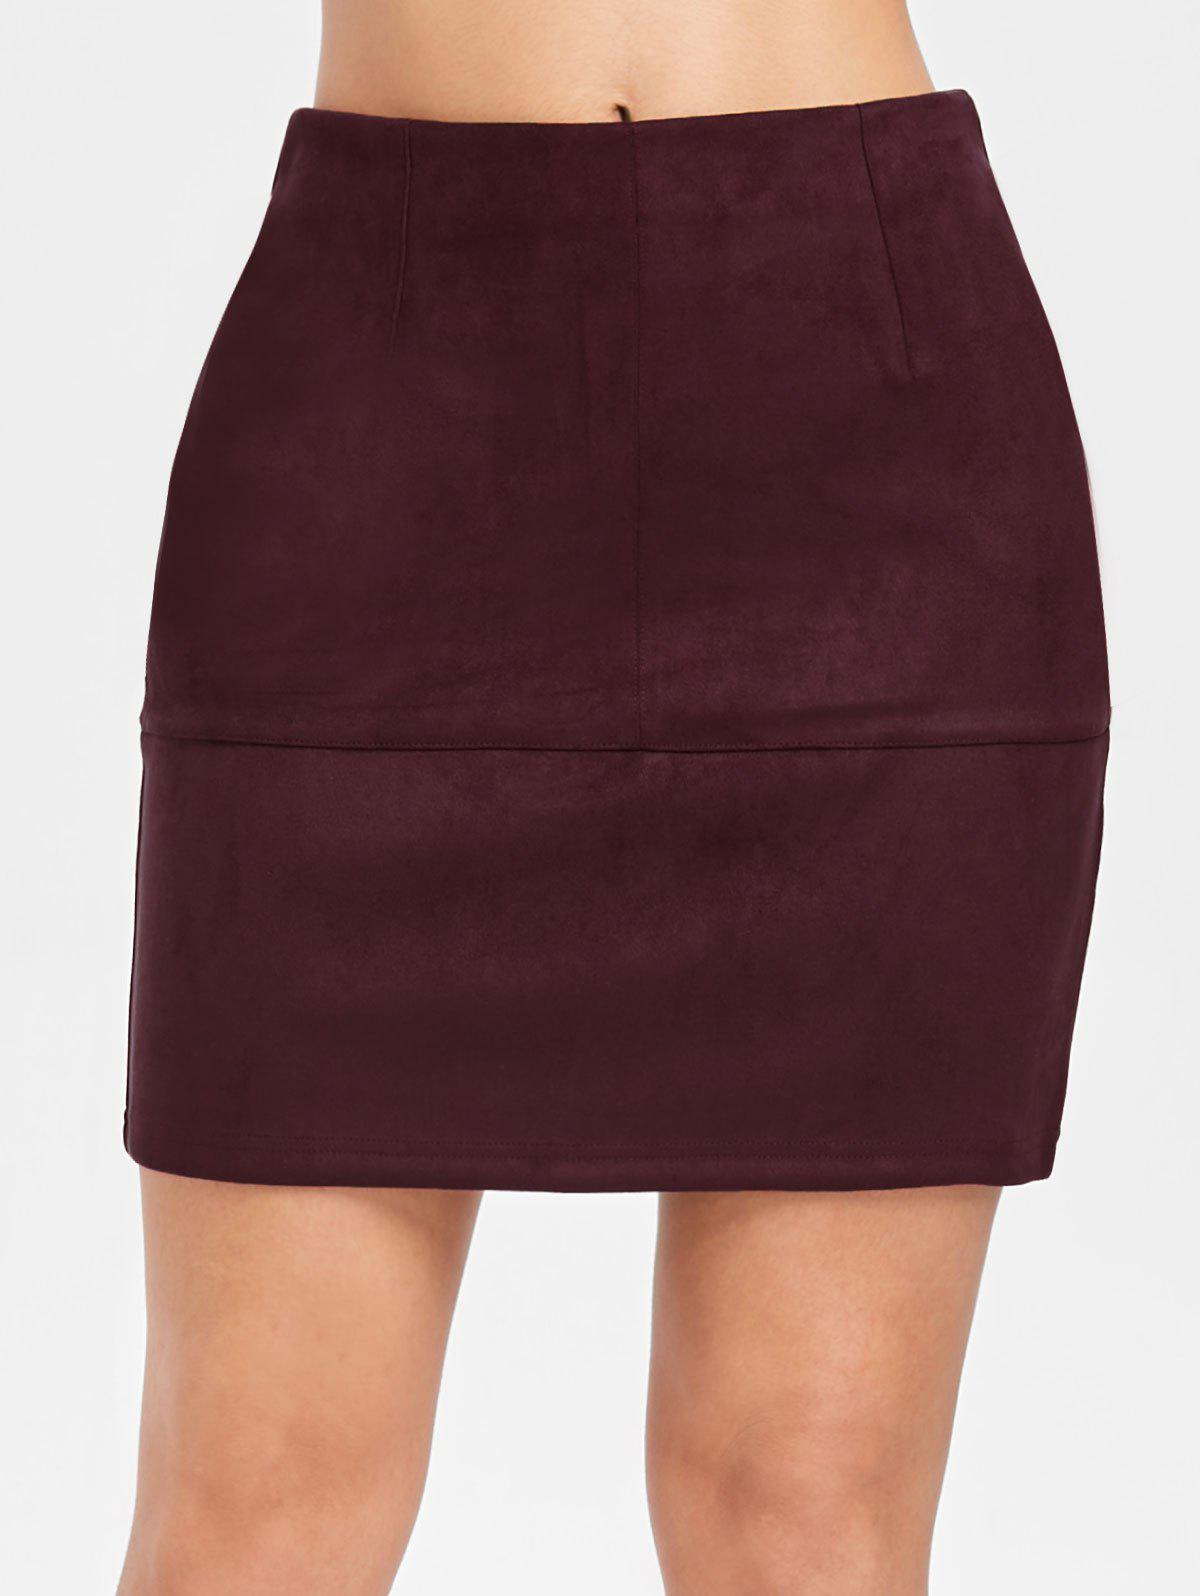 Faux Suede Mini Skirt - RED WINE M